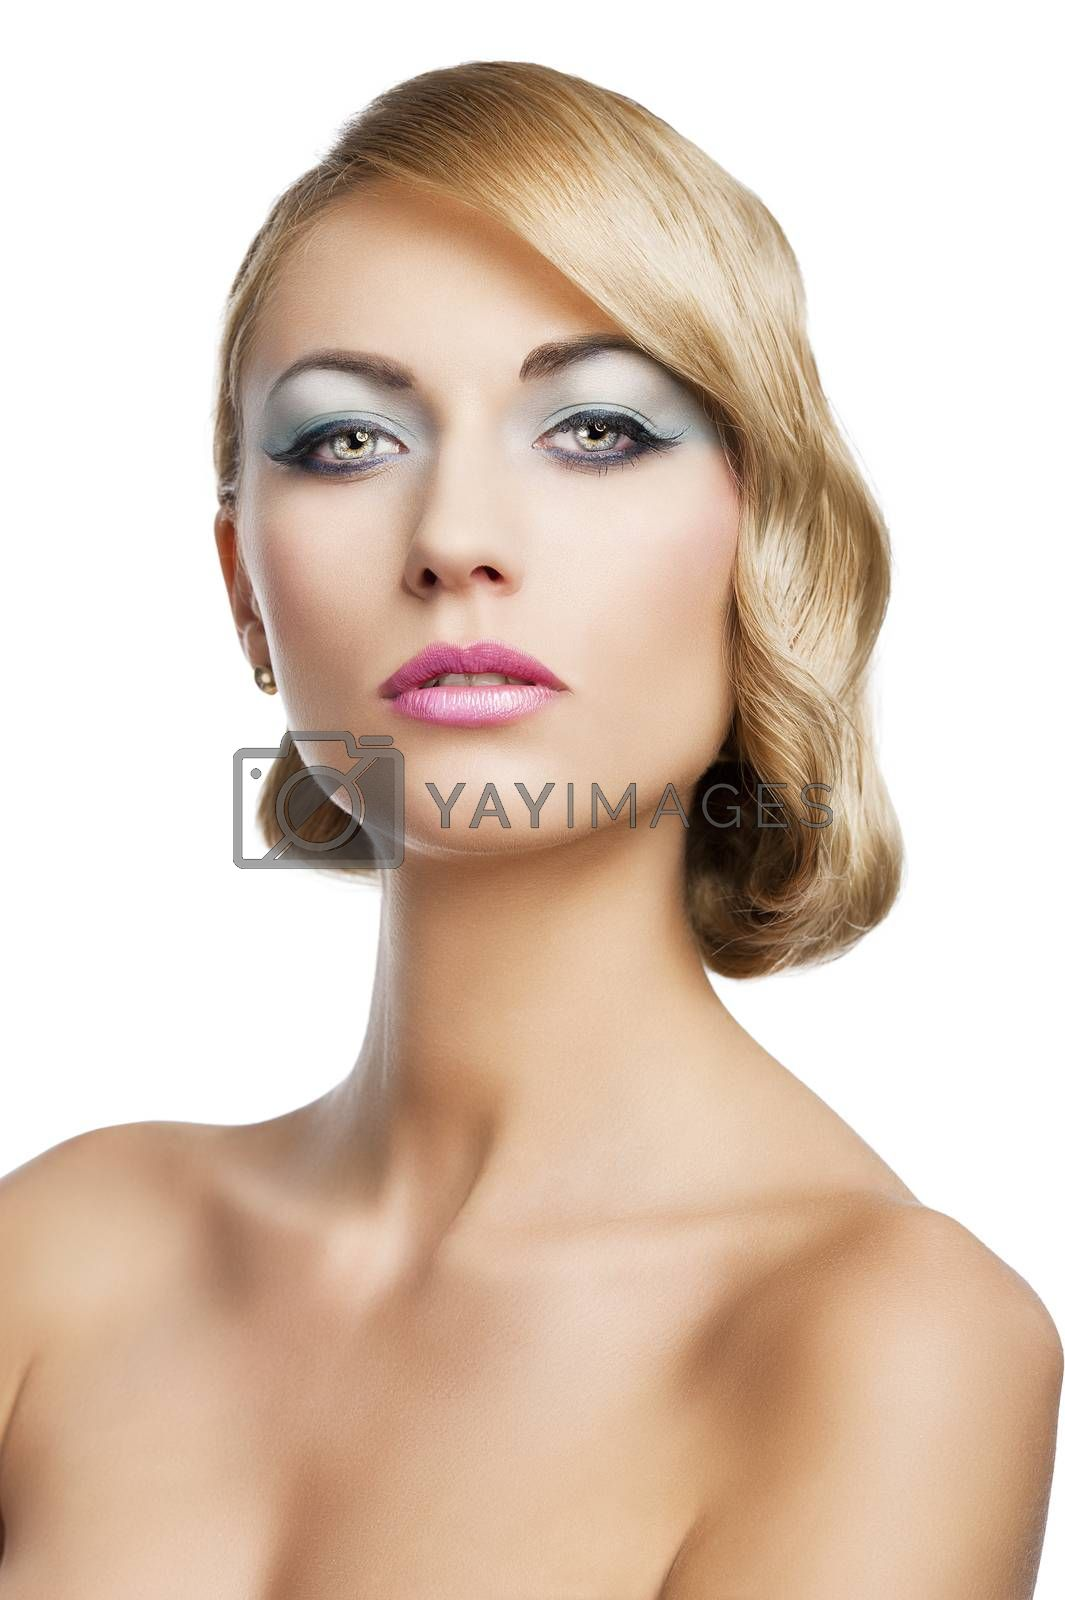 Royalty free image of blond vintage girl portrait, she is in front of the camera by fotoCD